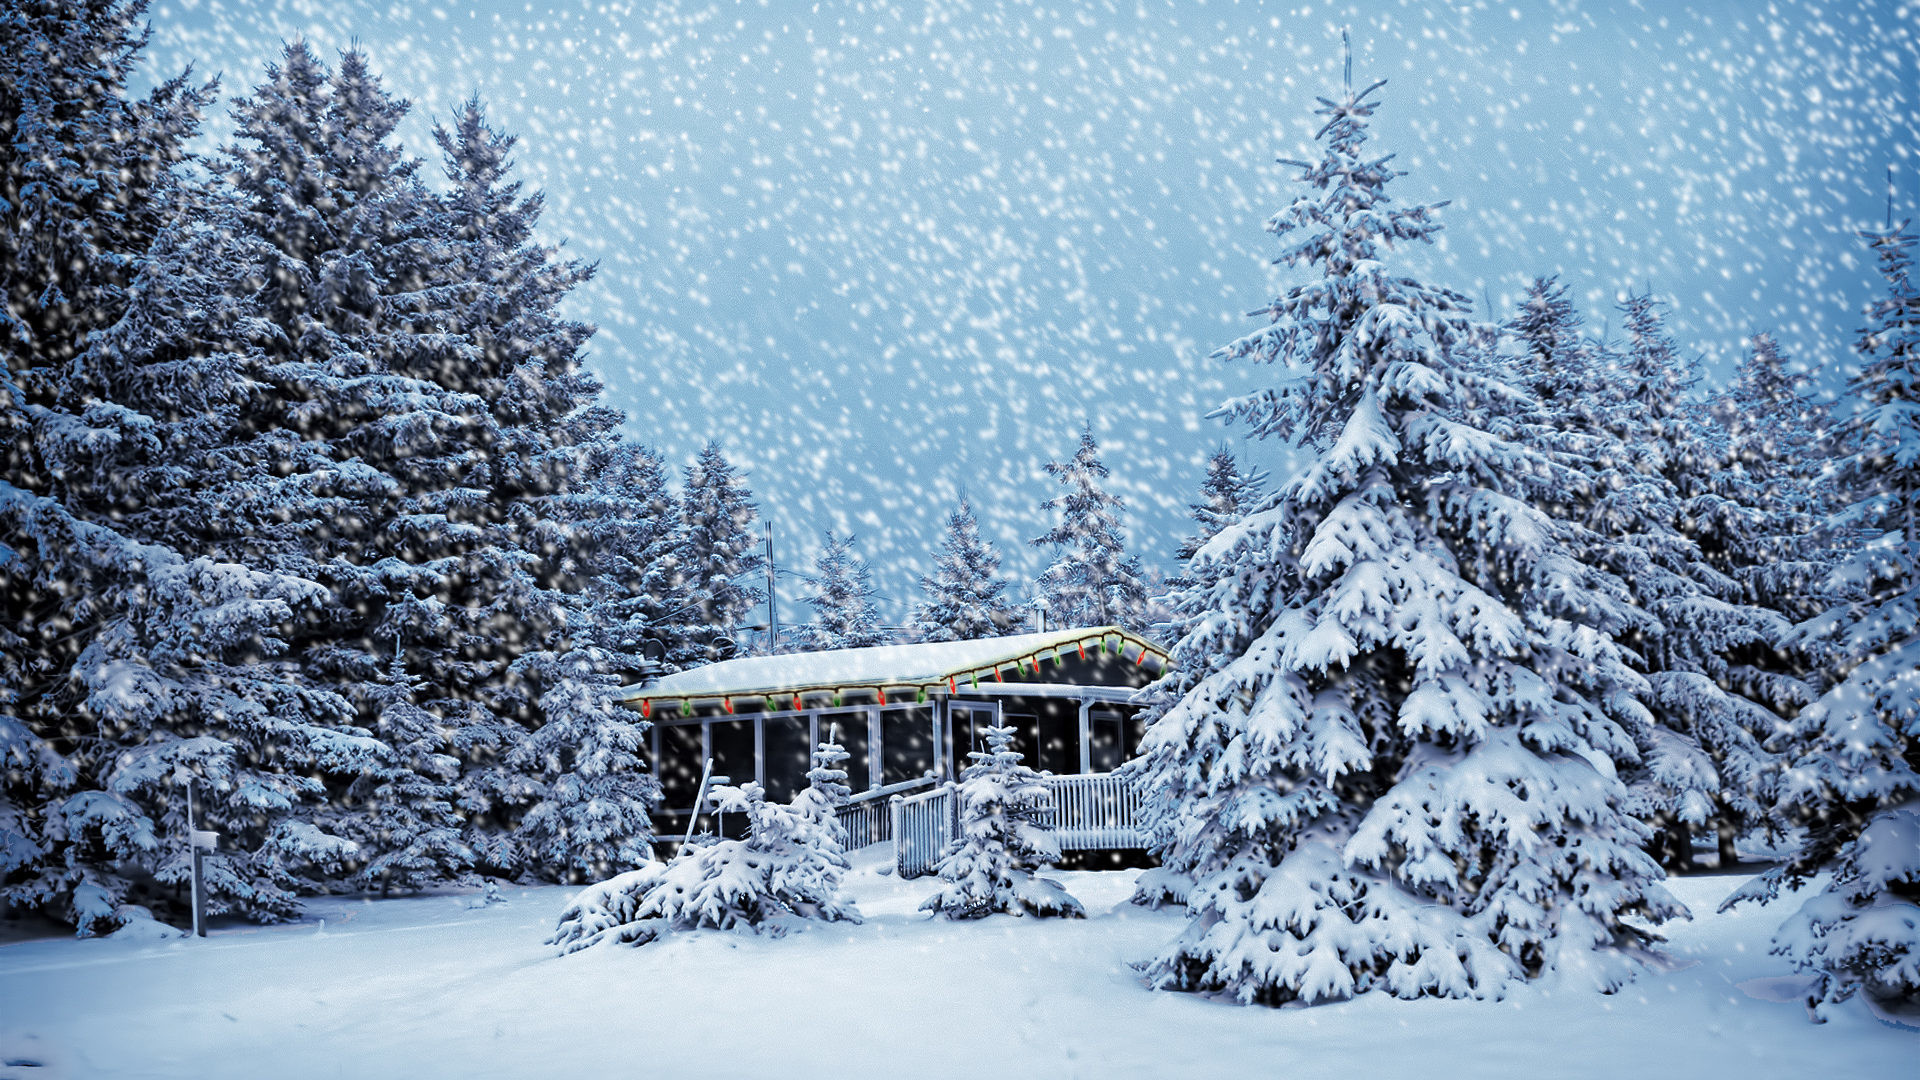 snowy christmas scene in Canada   wallpapers55.com – Best Wallpapers .